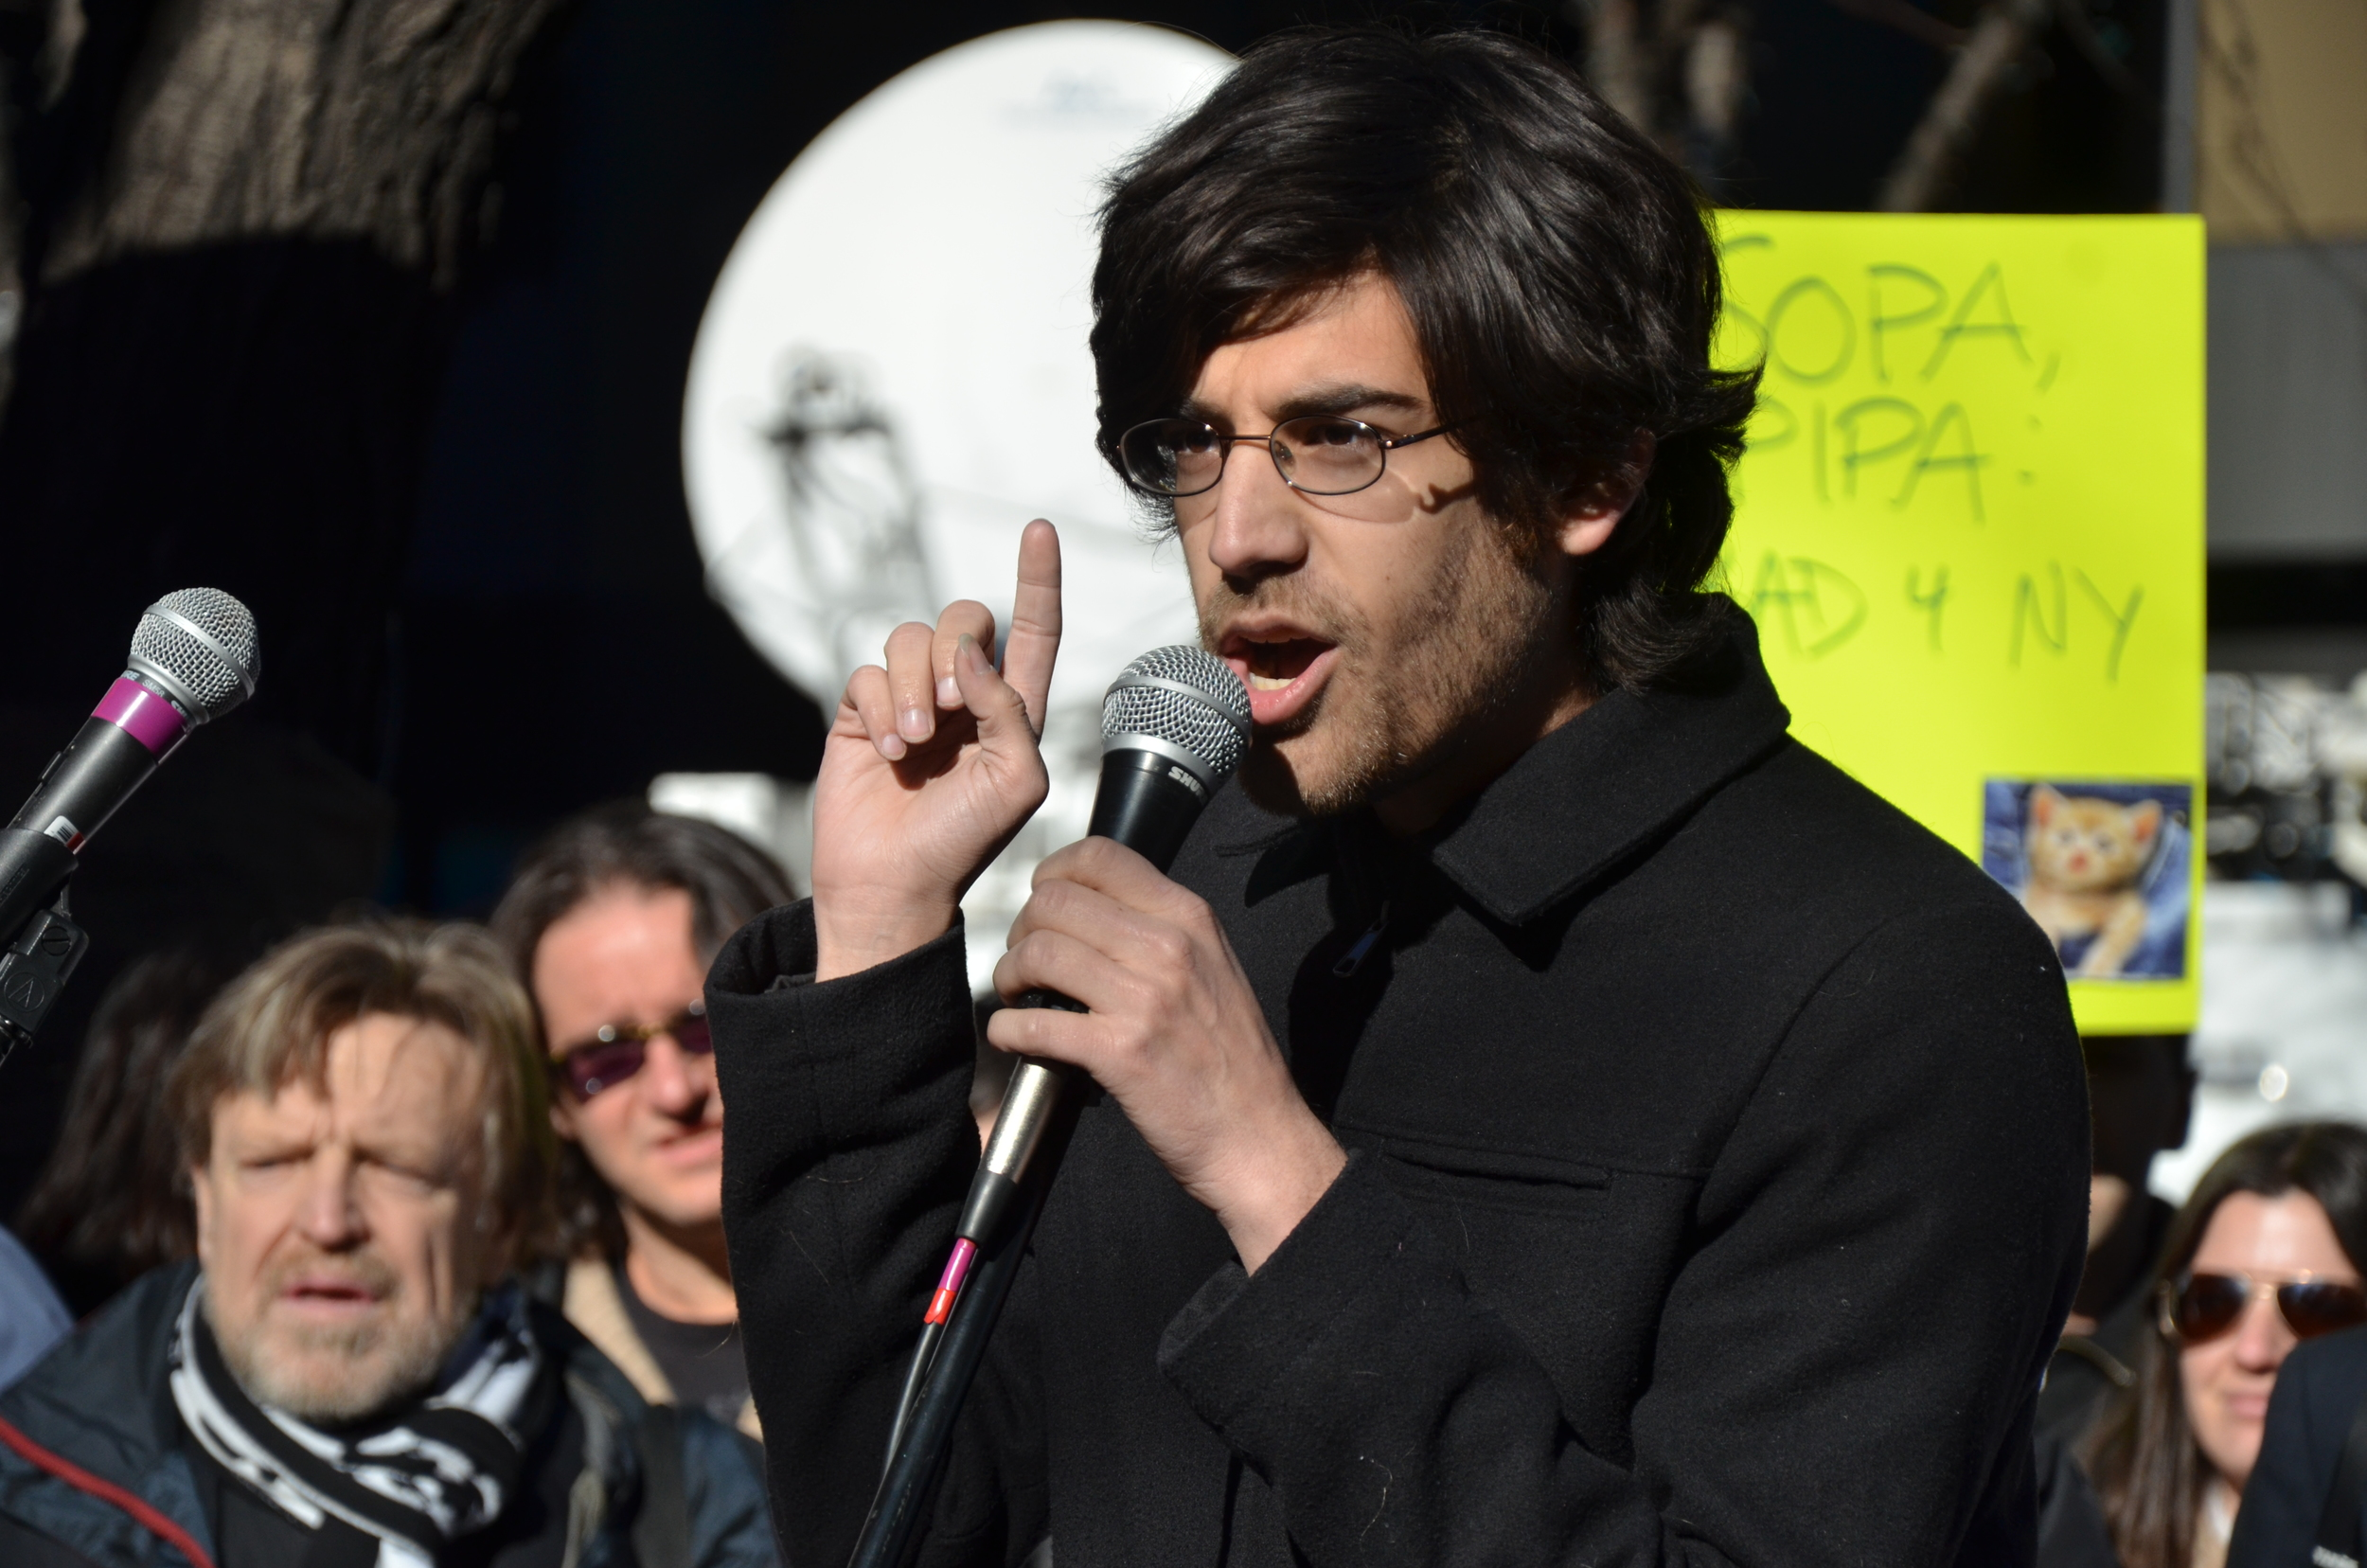 2012 - Swartz protesting against the Stop Online Piracy Act (SOPA) a year before his suicide. In the background, on the left corner, is Grateful Dead lyricist, John Perry Barlow.